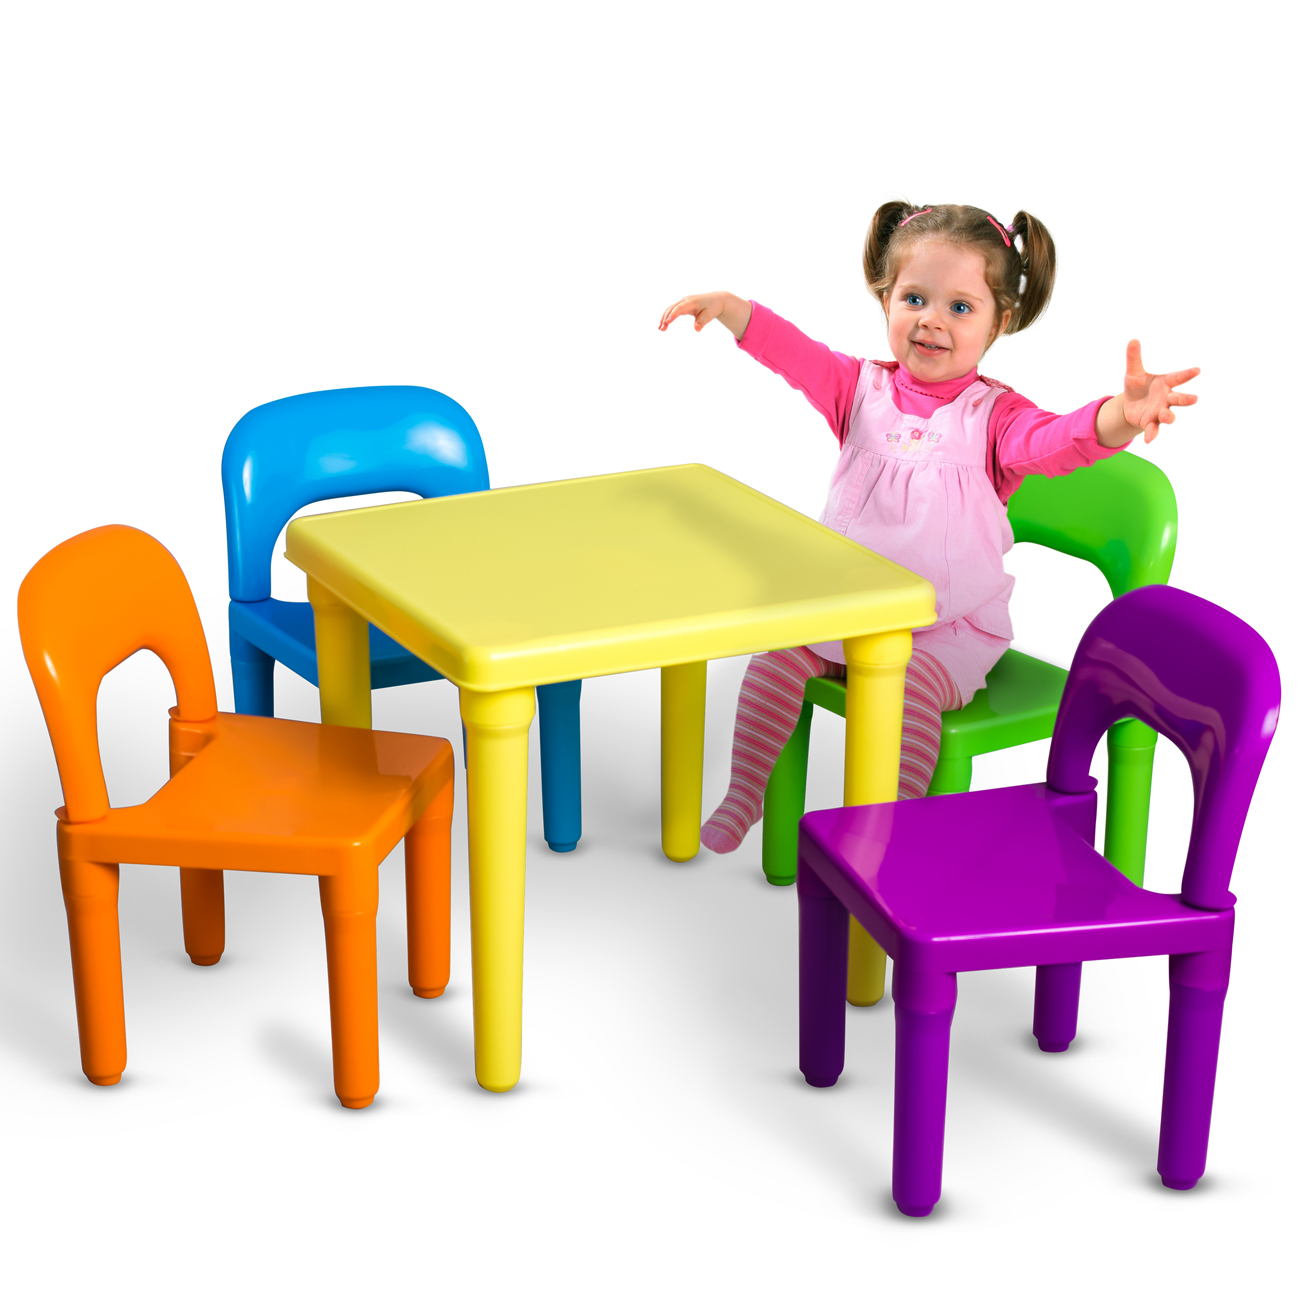 OxGord Kids Table And Chairs Play Set For Toddler Child Toy Activity Furniture Indoor Or Outdoor  sc 1 st  Walmart & LEGO Table